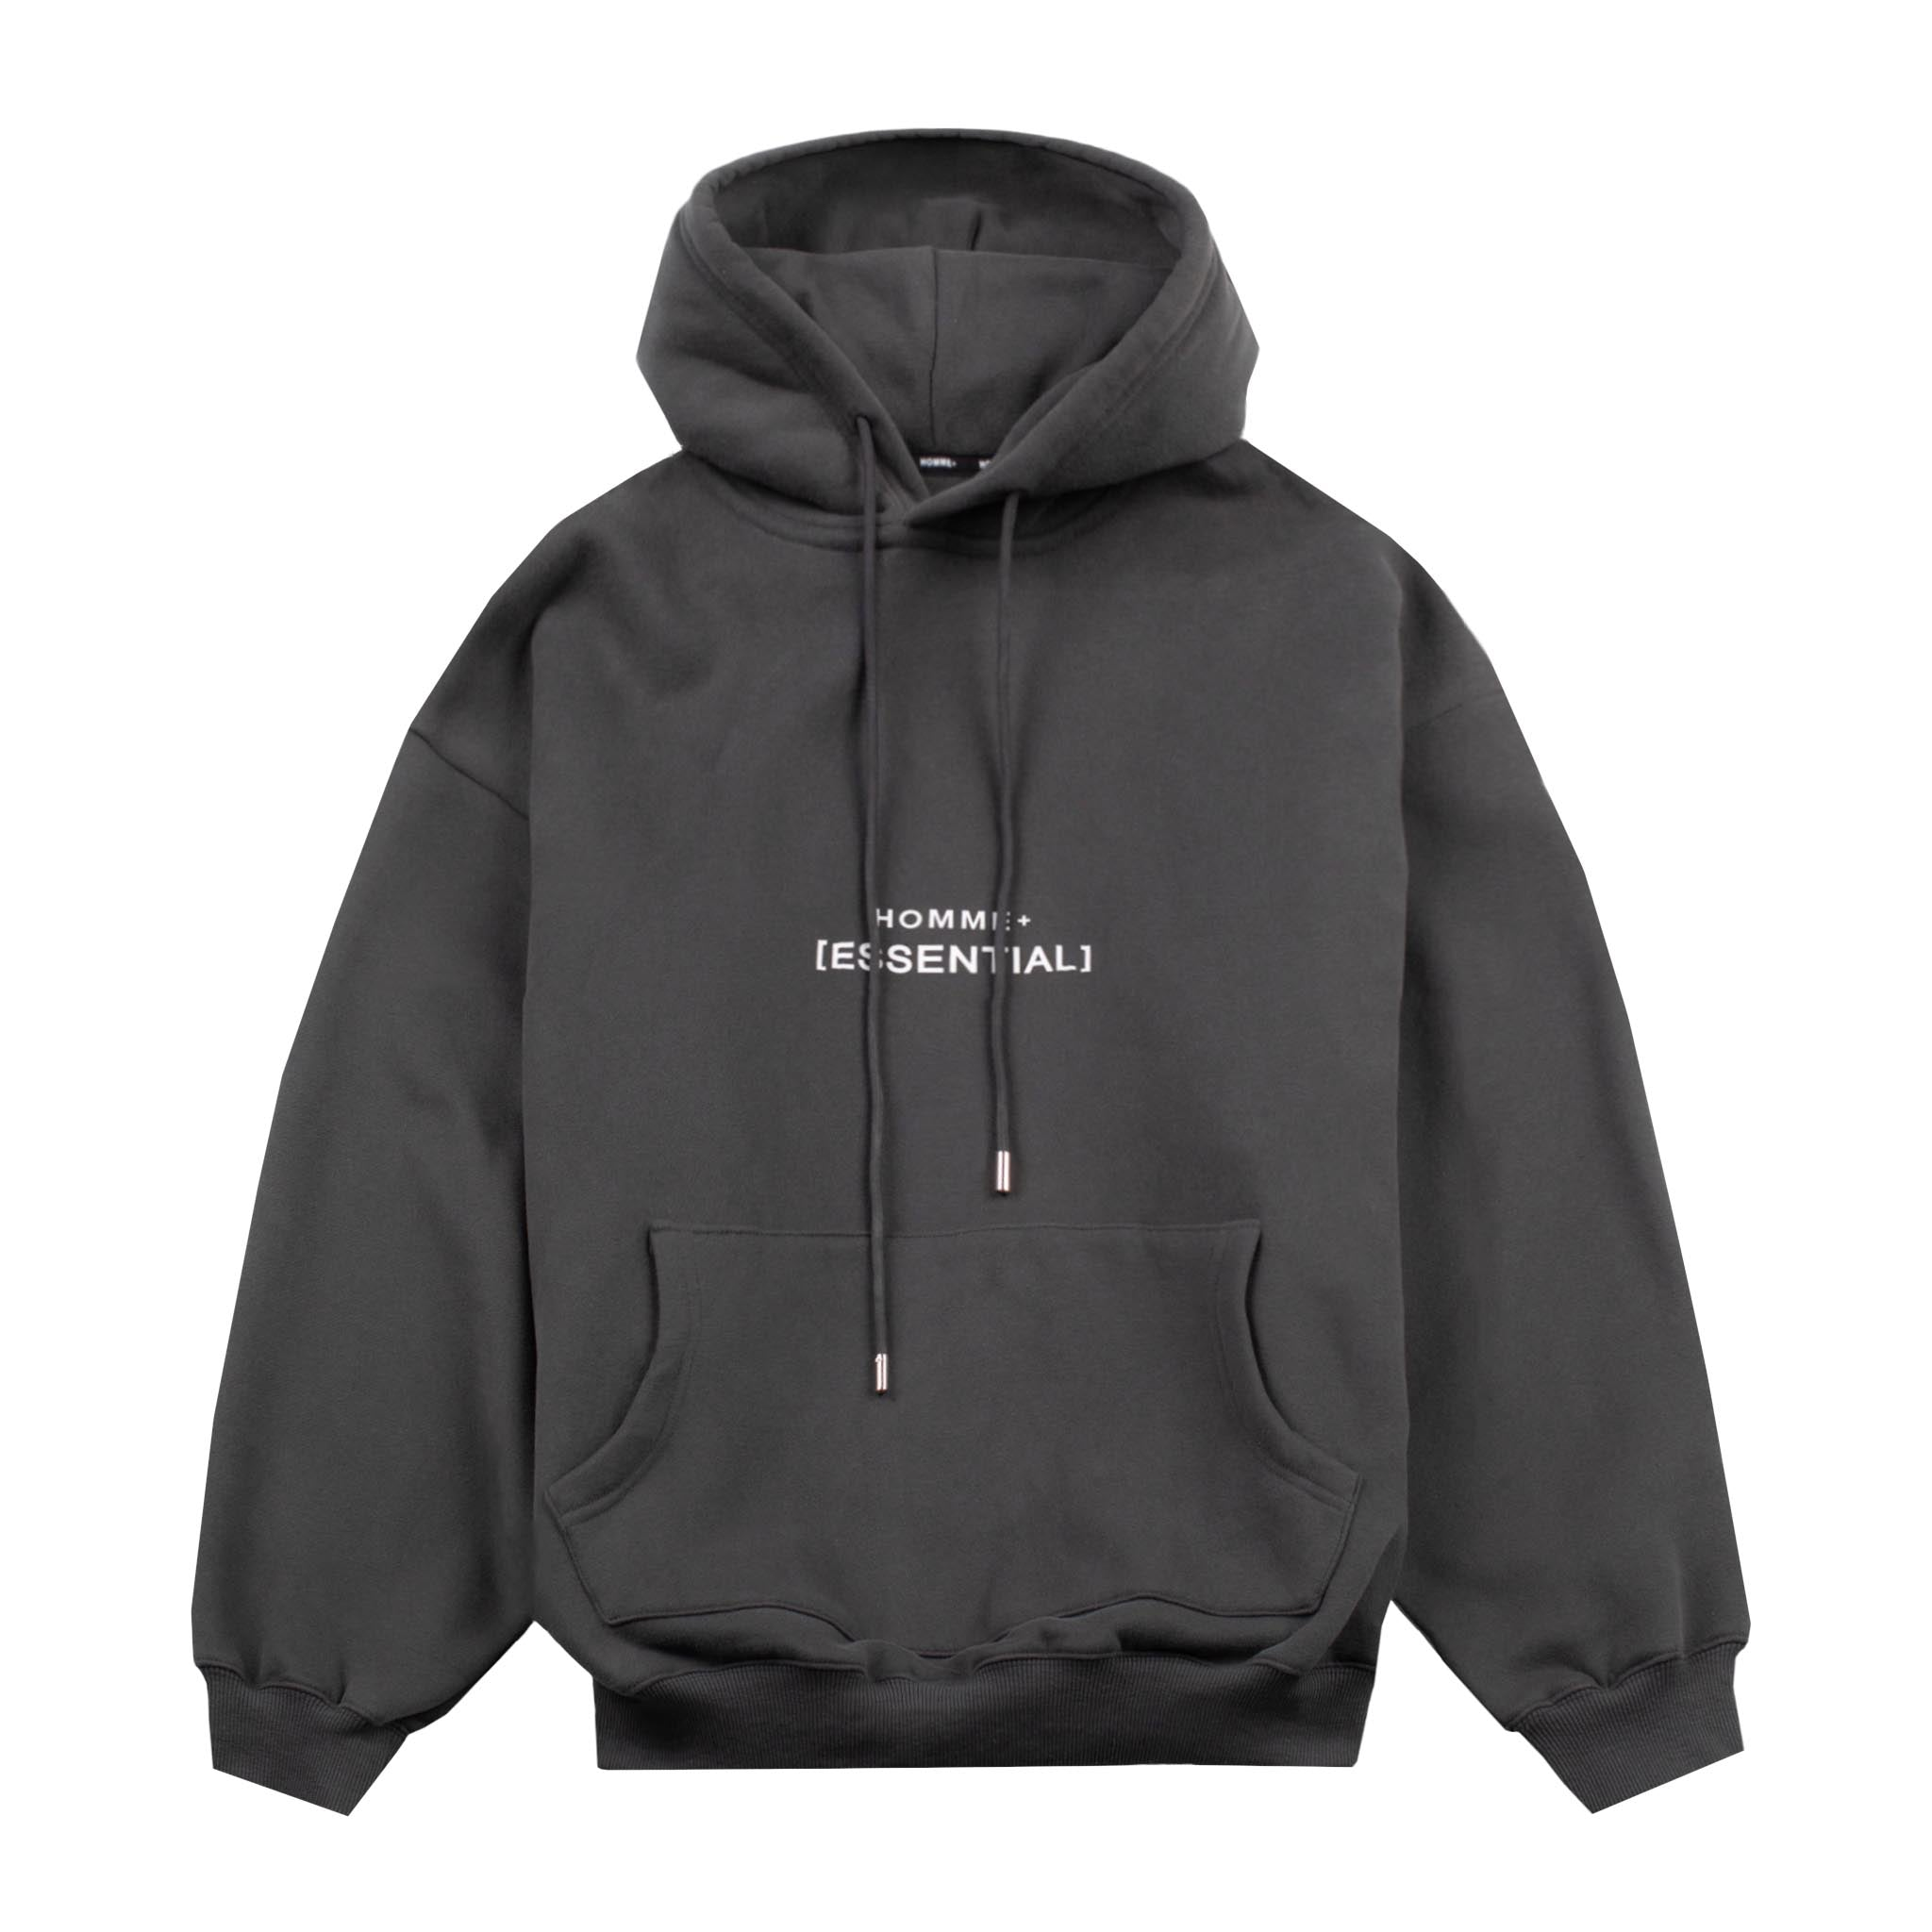 HOMME+ 'ESSENTIAL' Heavyweight Hoodie Charcoal